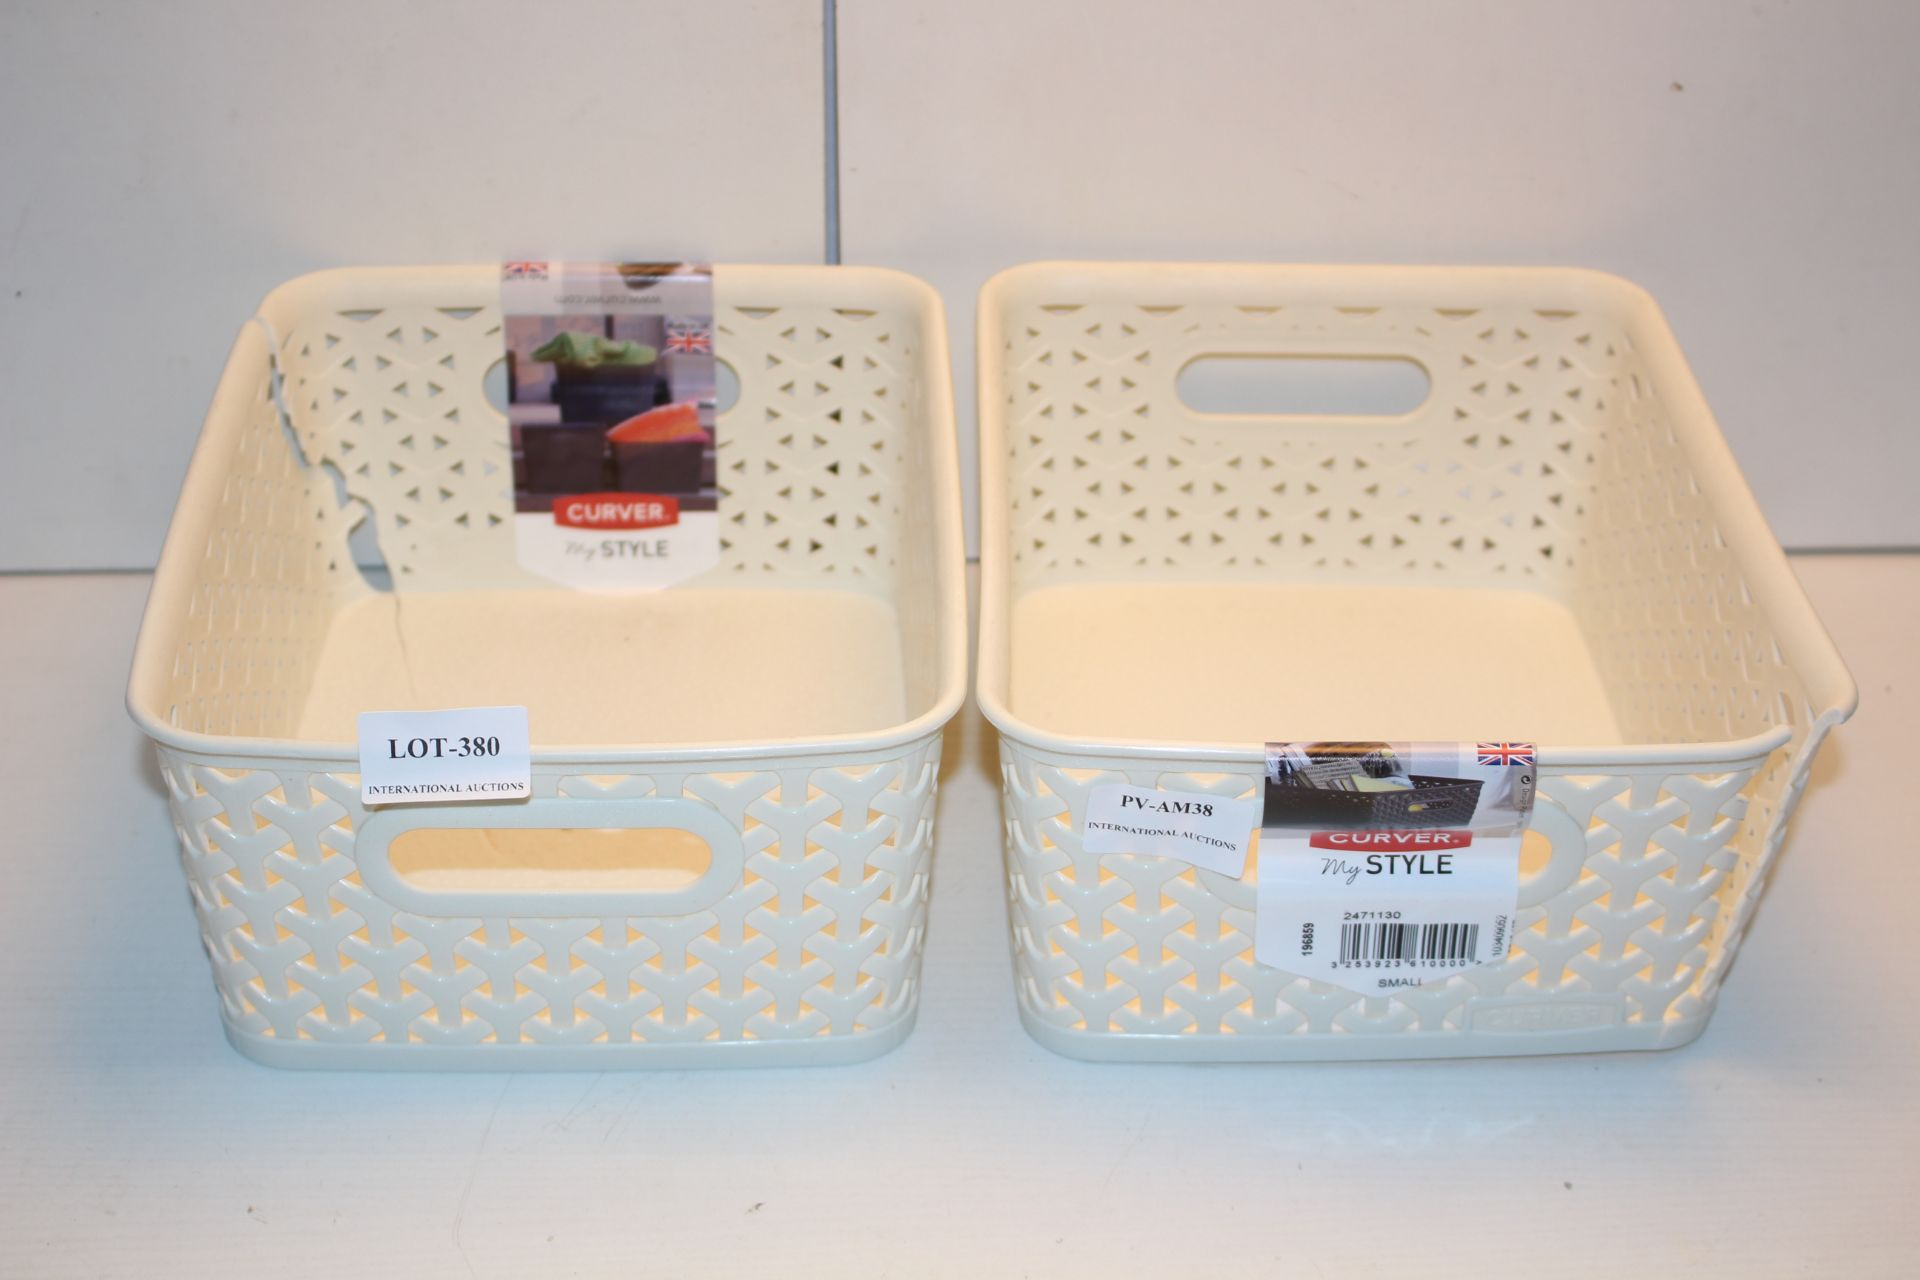 2X CURVER MY STYLE BASKETS Condition ReportAppraisal Available on Request- All Items are Unchecked/